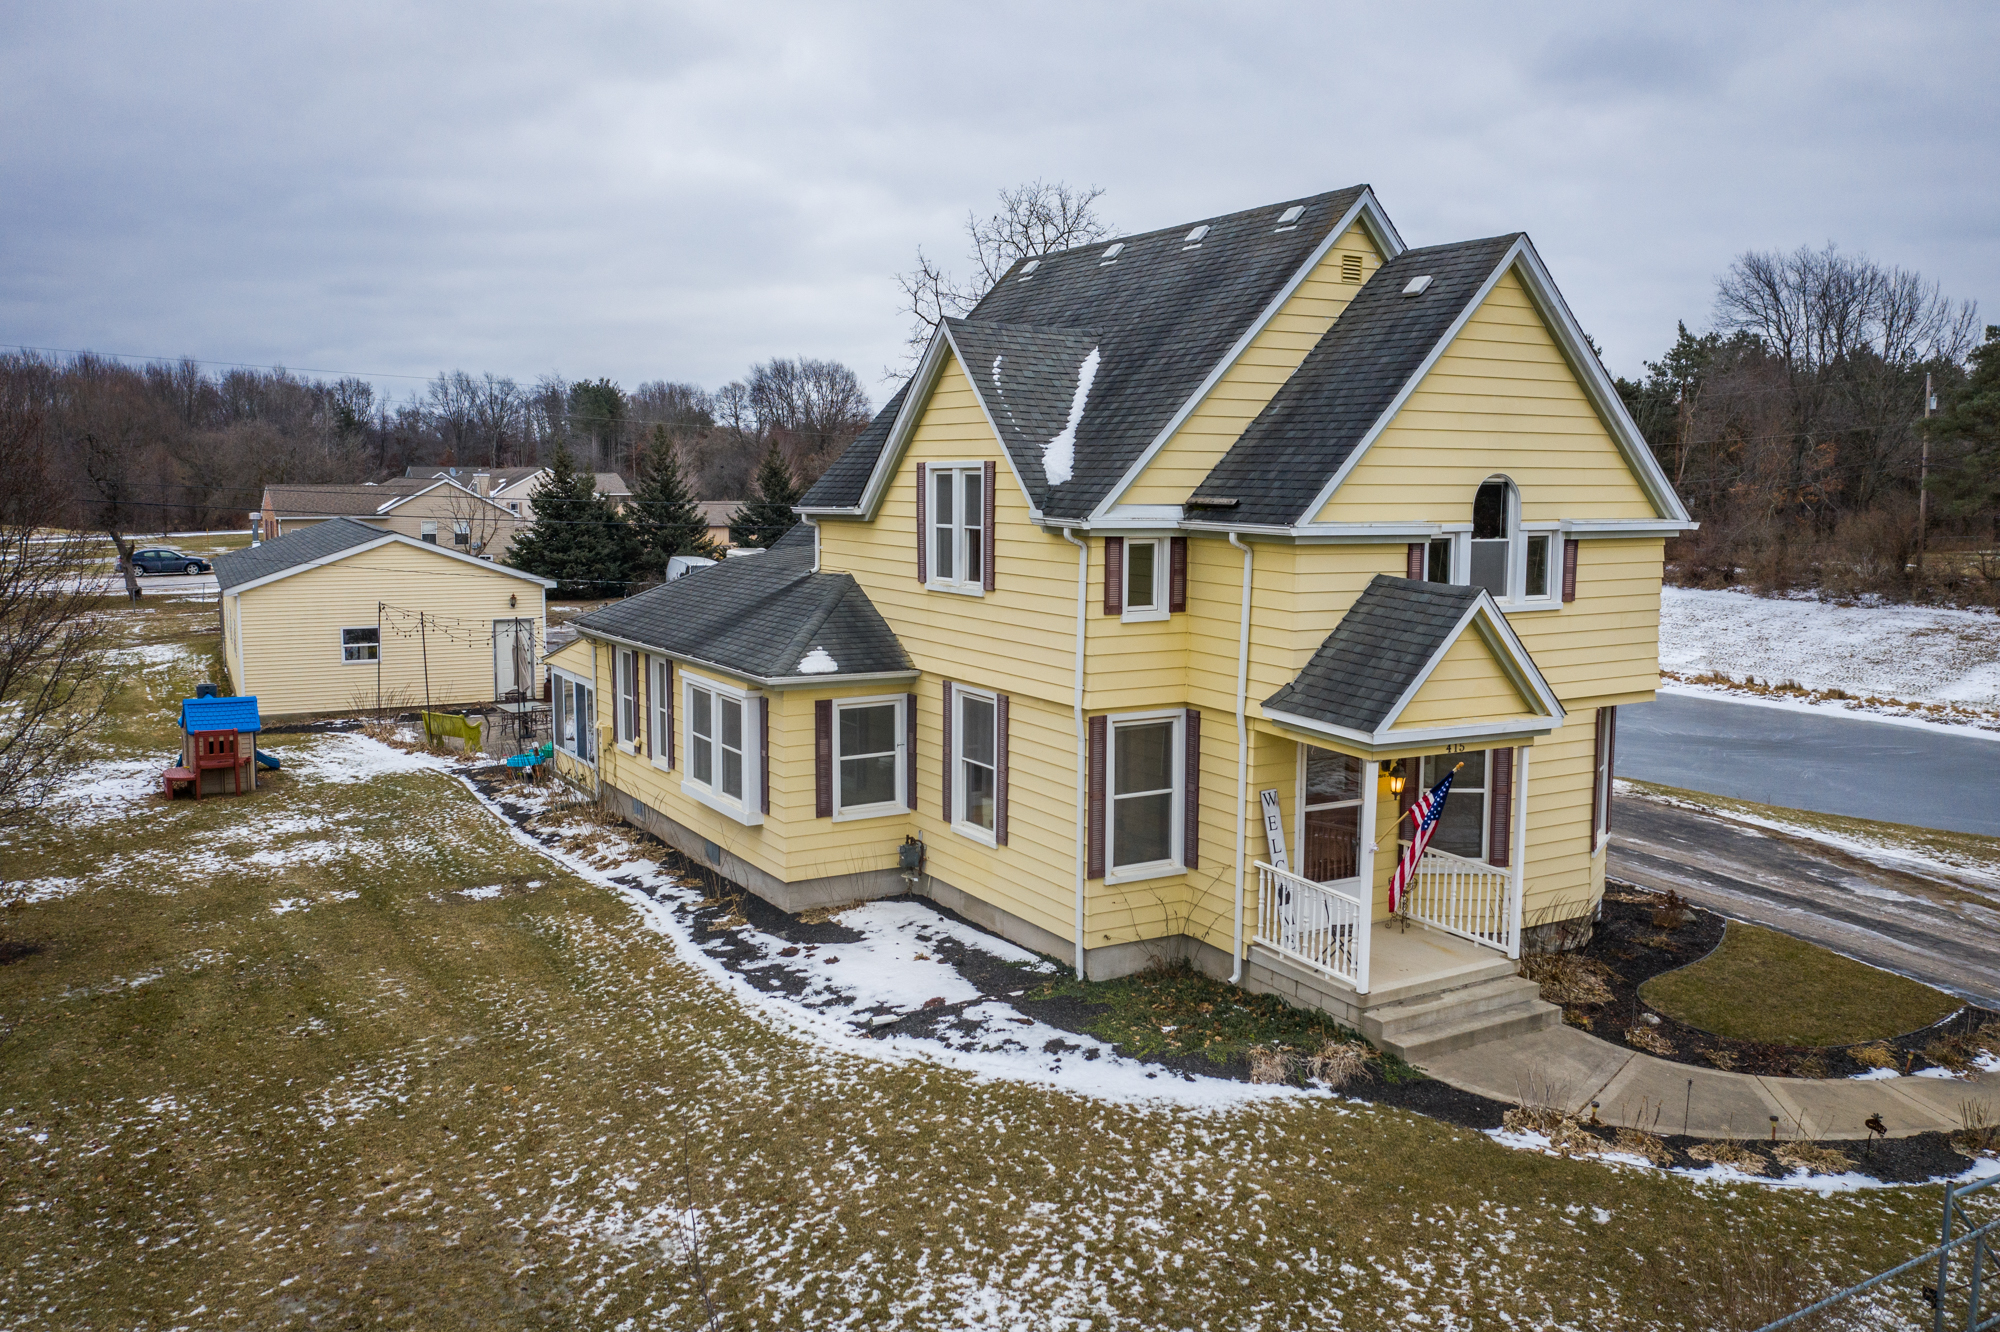 S. Tipsico Lake, Milford - $305,000   DOM 117 / Sold for 95% of asking price / 38 Showings